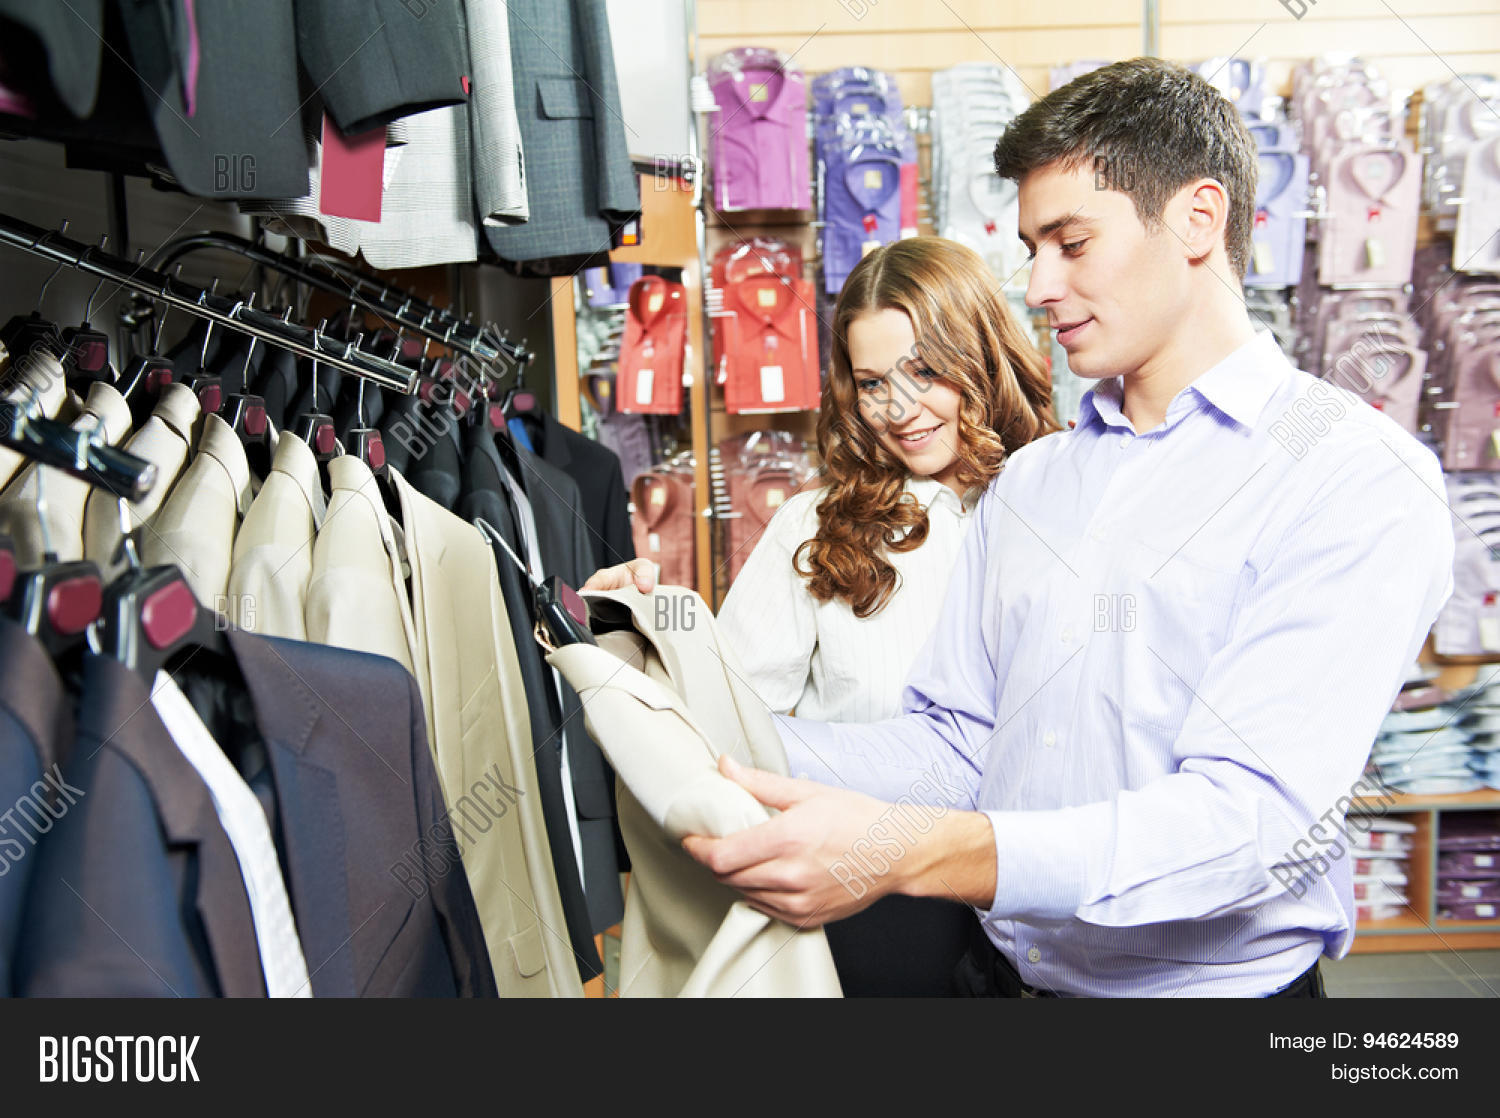 b308cfb1 Young man and woman choosing suit jacket during apparel shopping at clothing  store